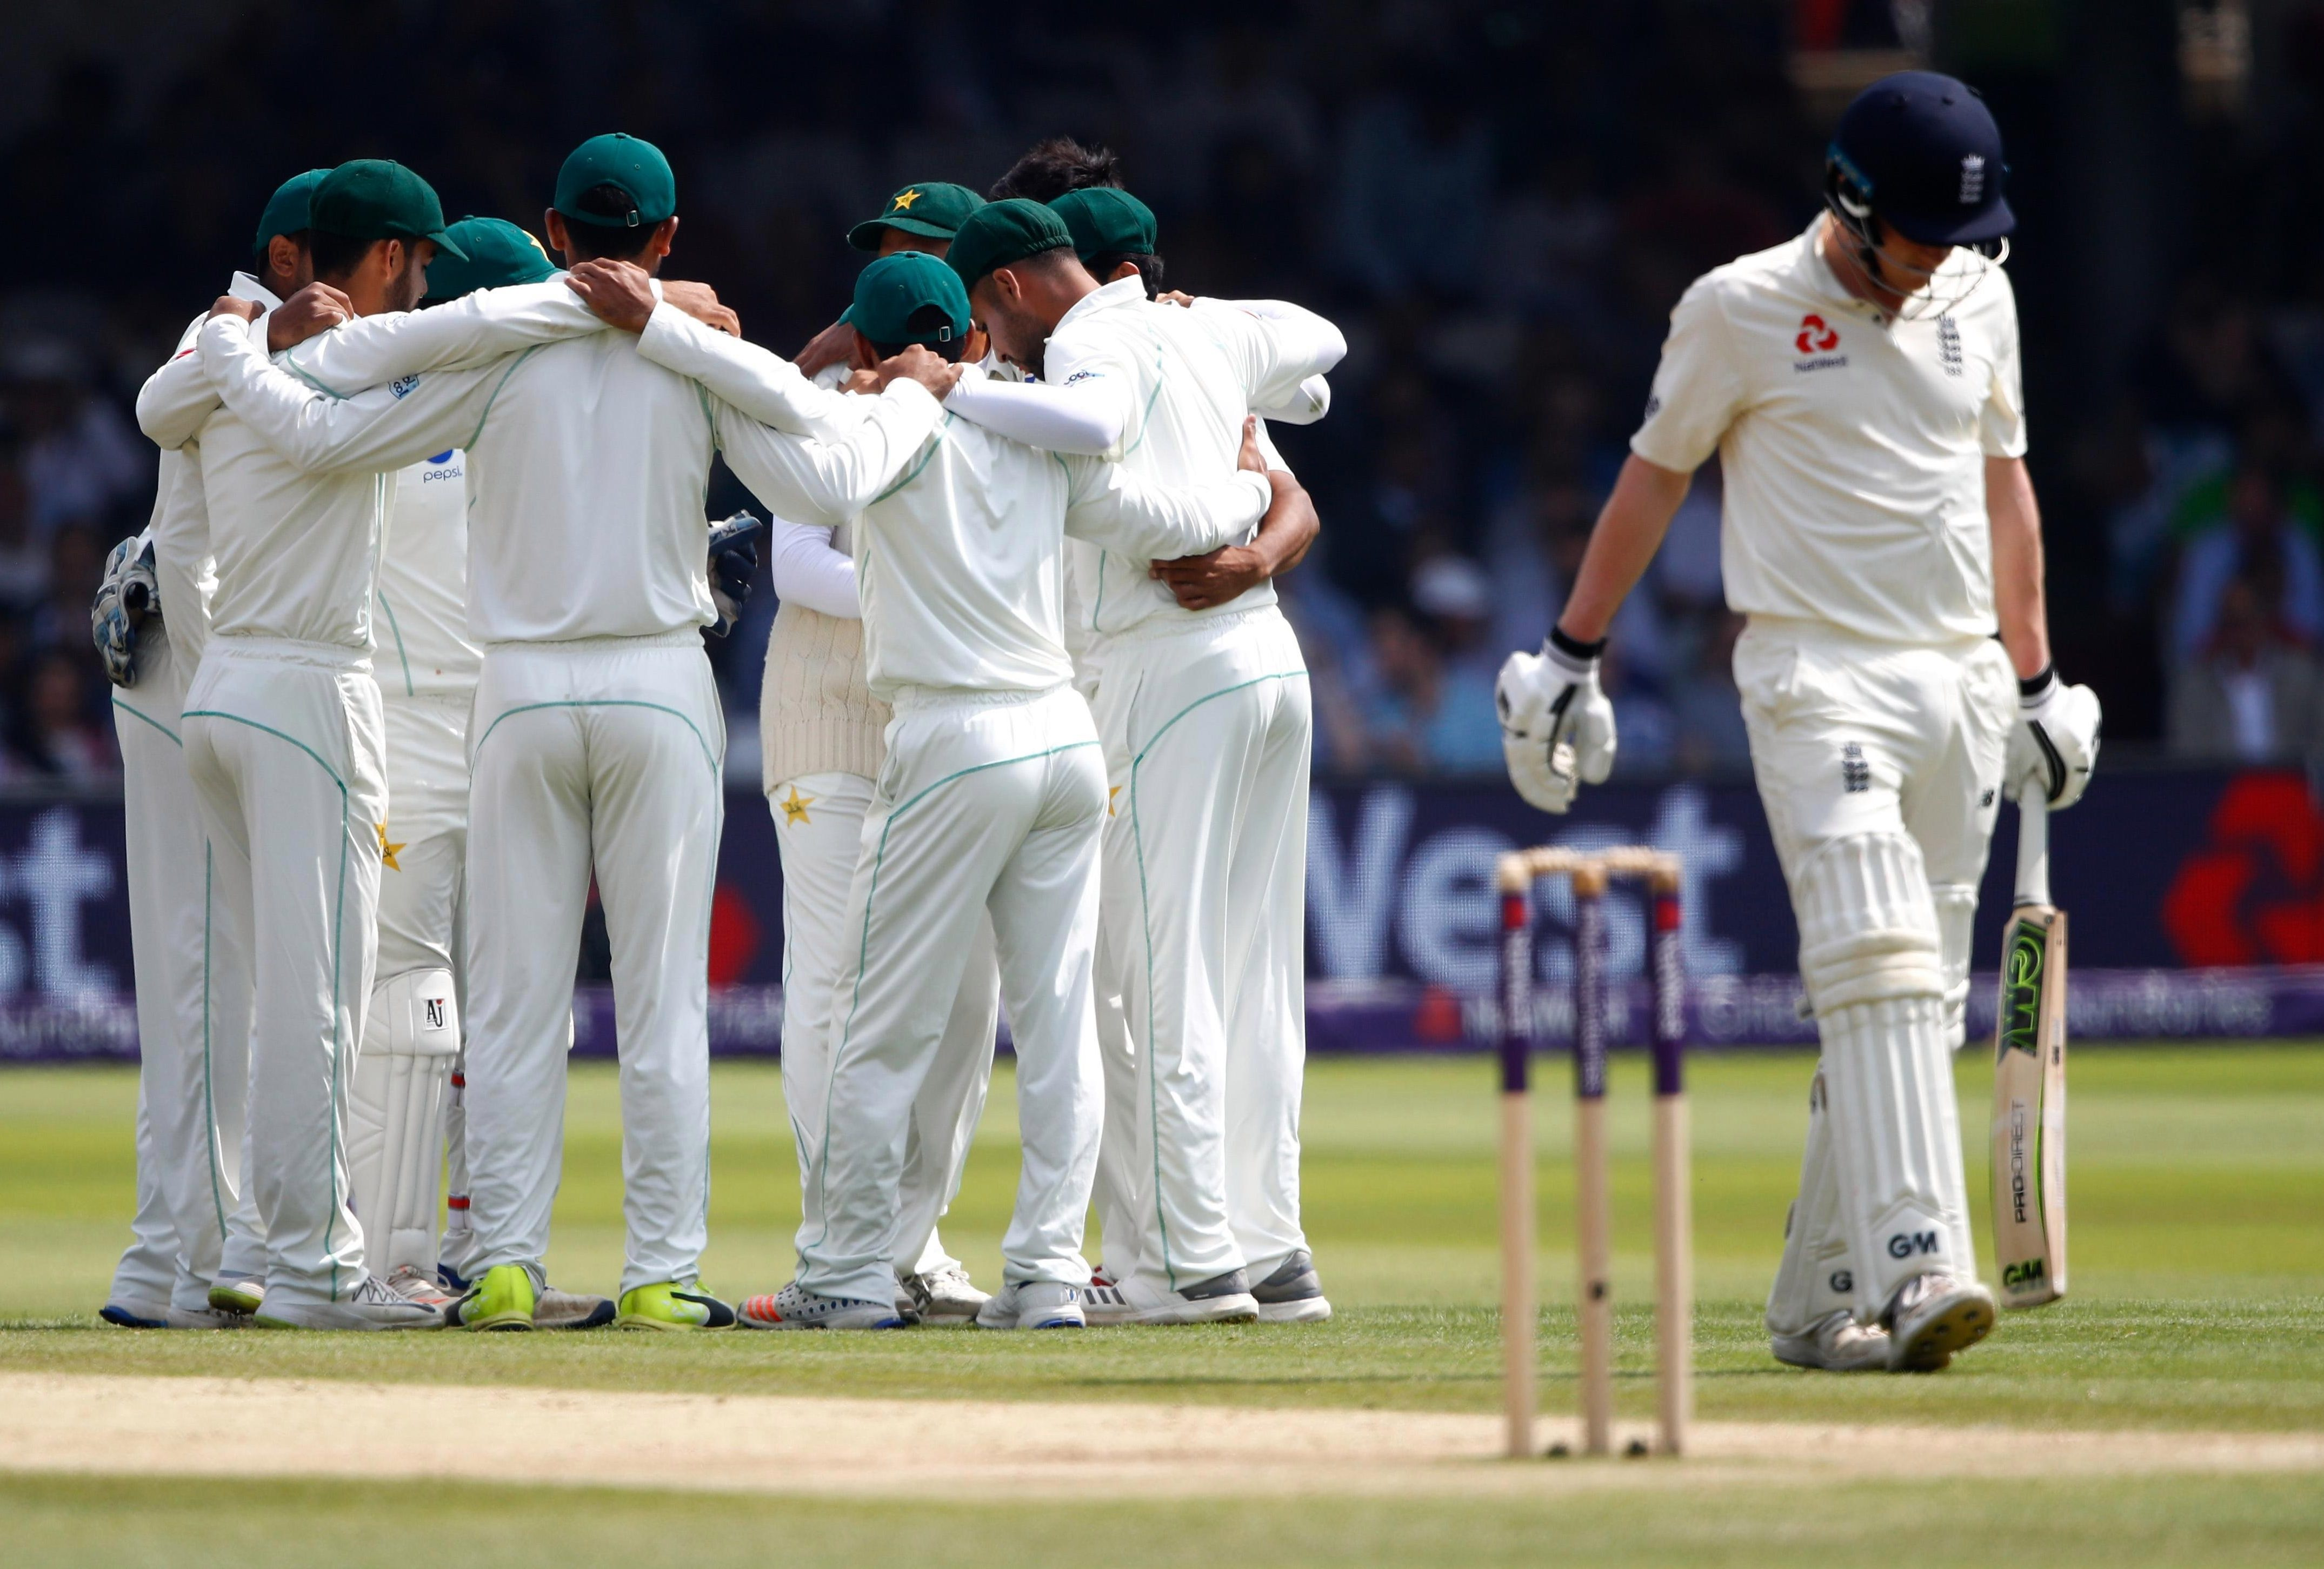 Pakistan link up for a huddle as Dom Bess makes his way back to the changing room after he was bowled